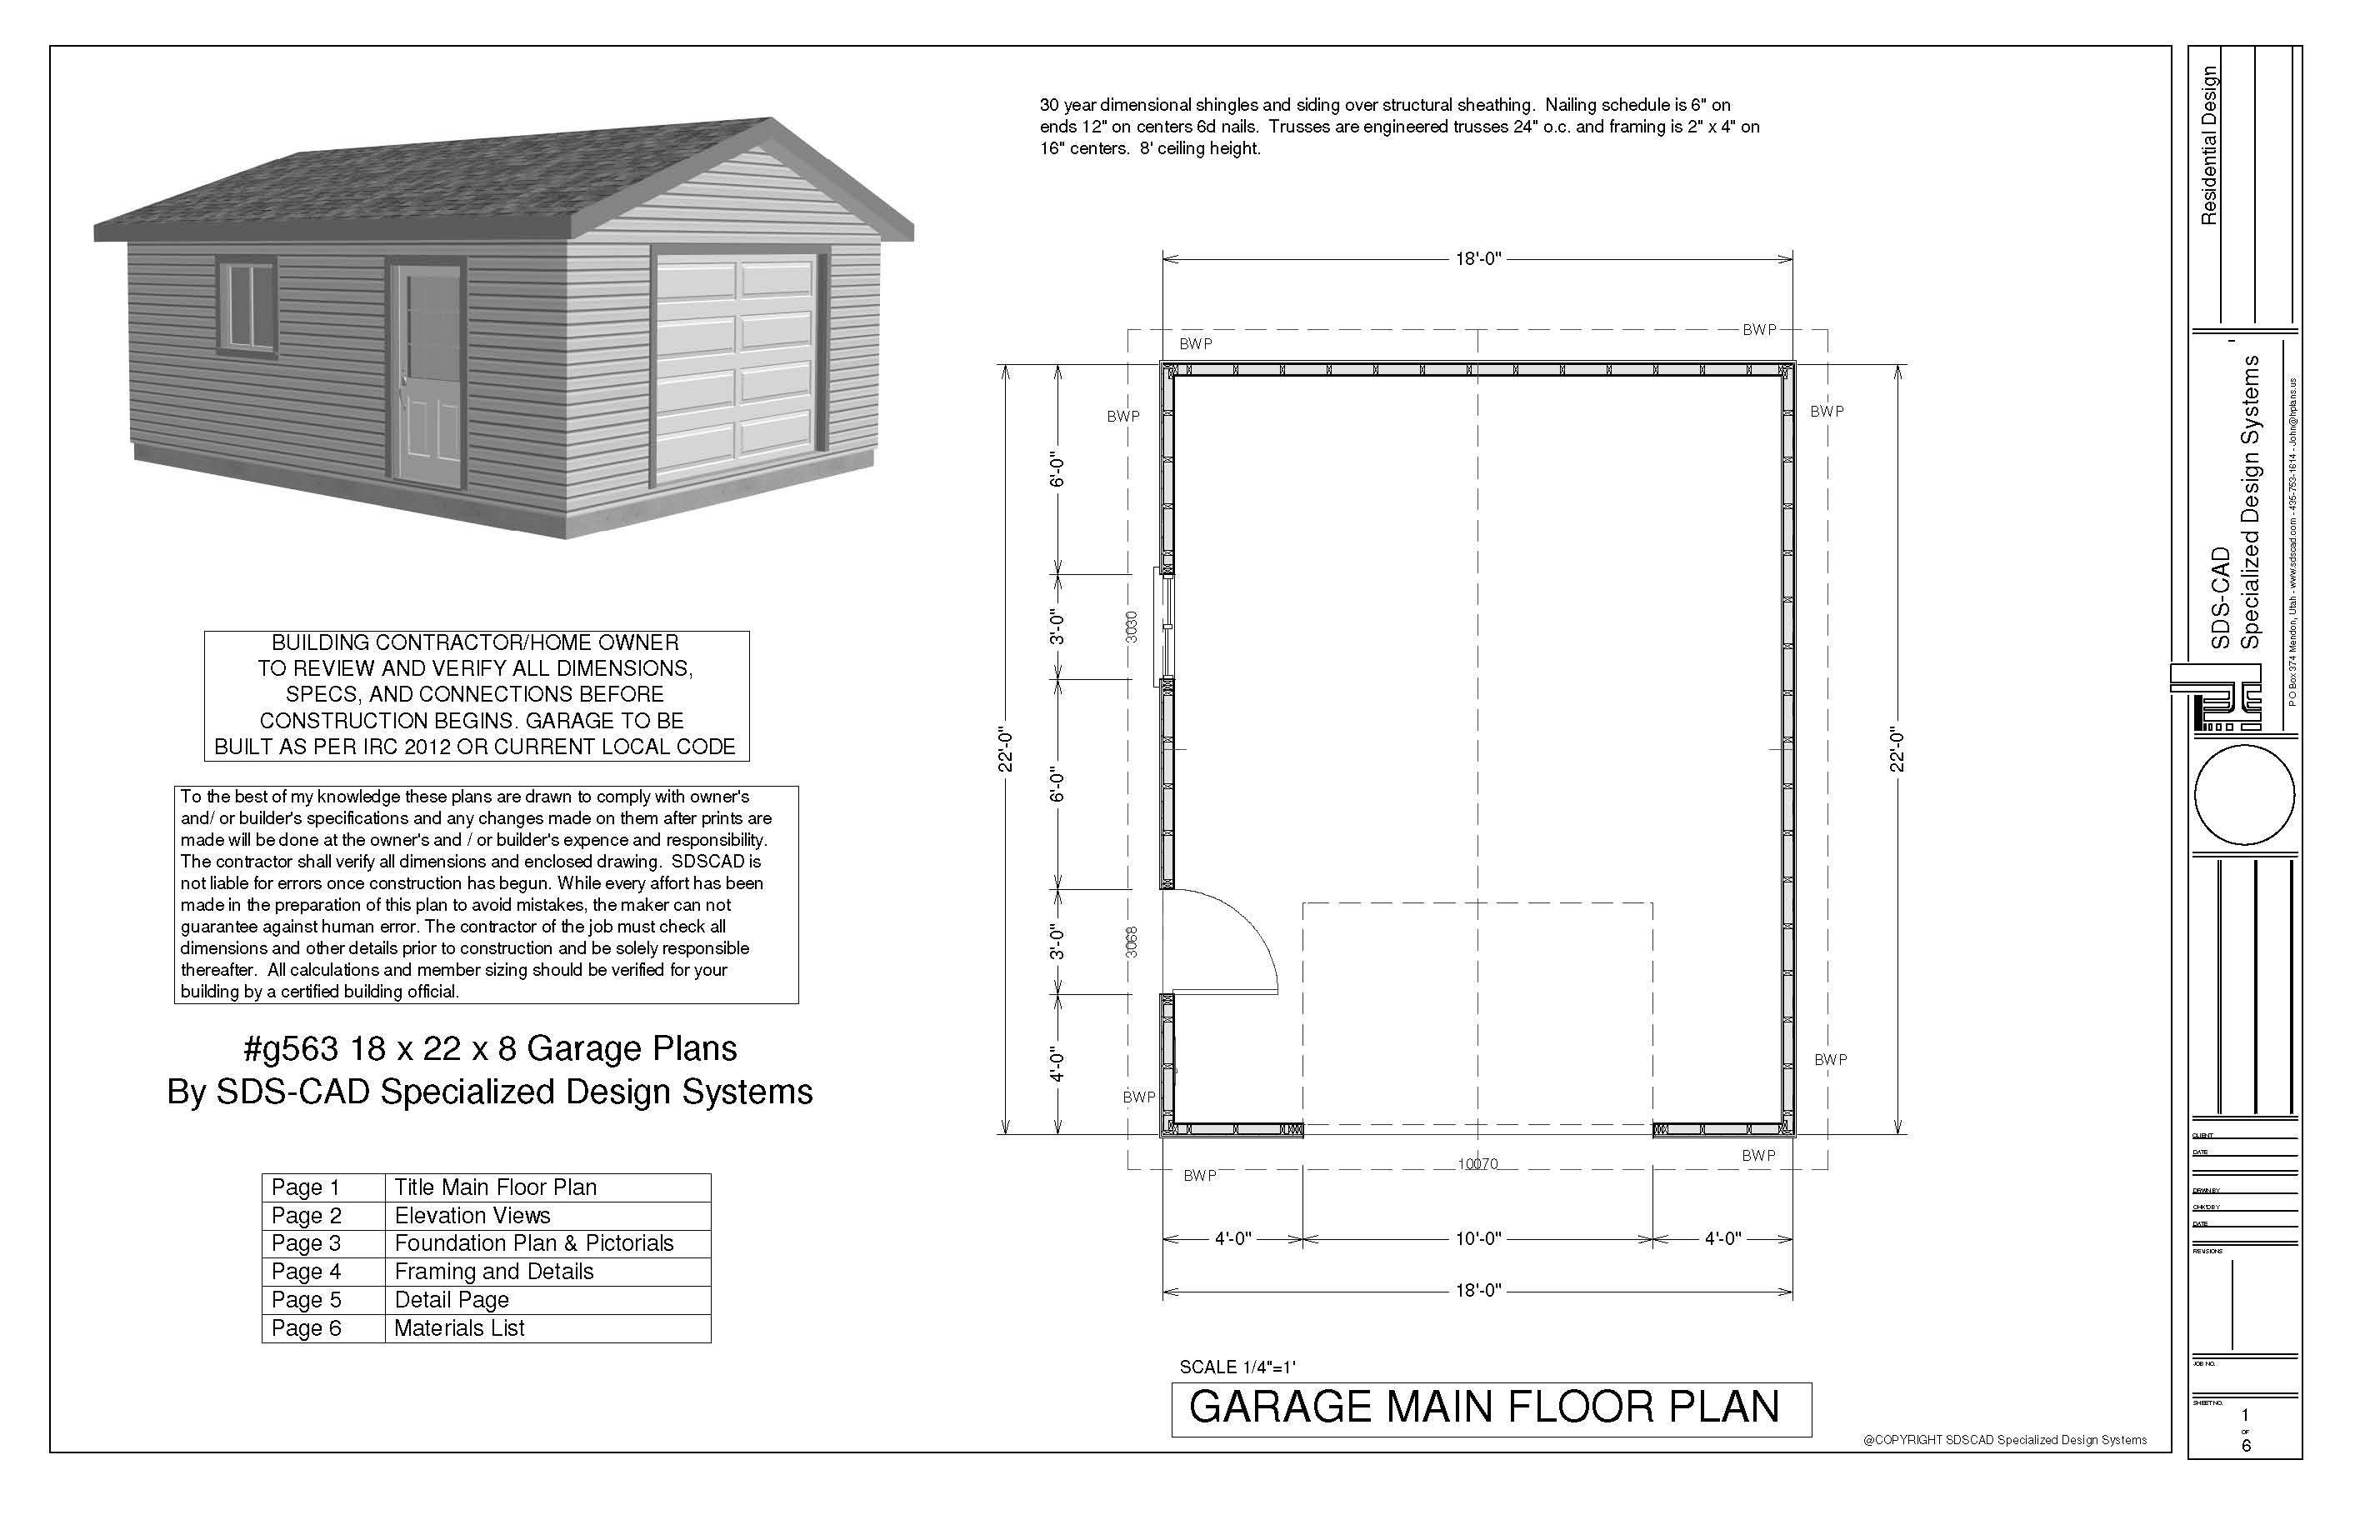 Free Online Garage Design Program: G563 18 X 22 X 8 Garage Plans In PDF And DWG